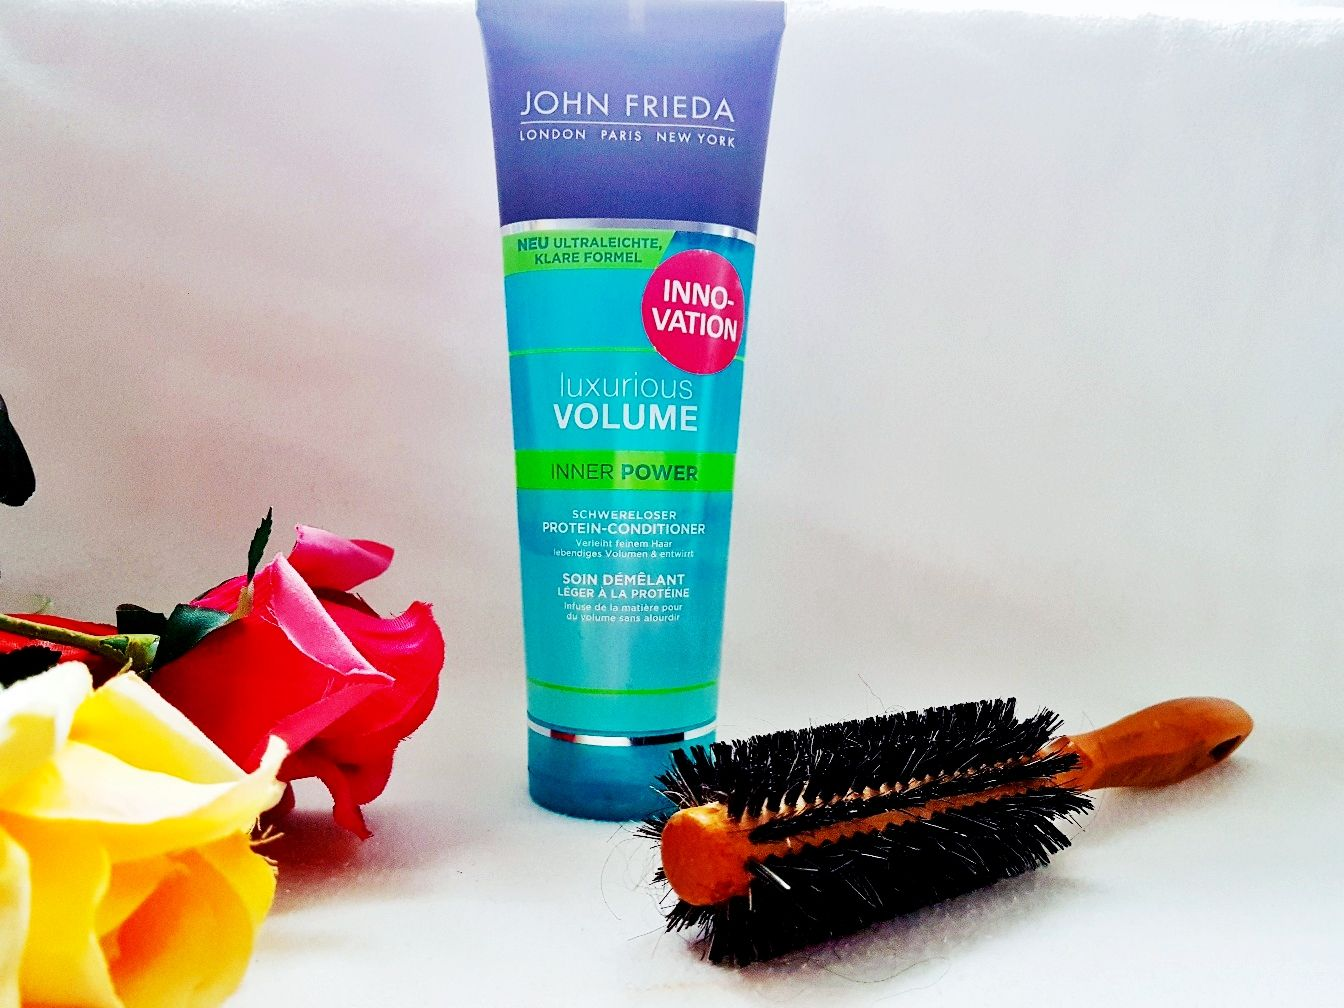 John Frieda Luxurious Volume Inner Power Protein Conditioner